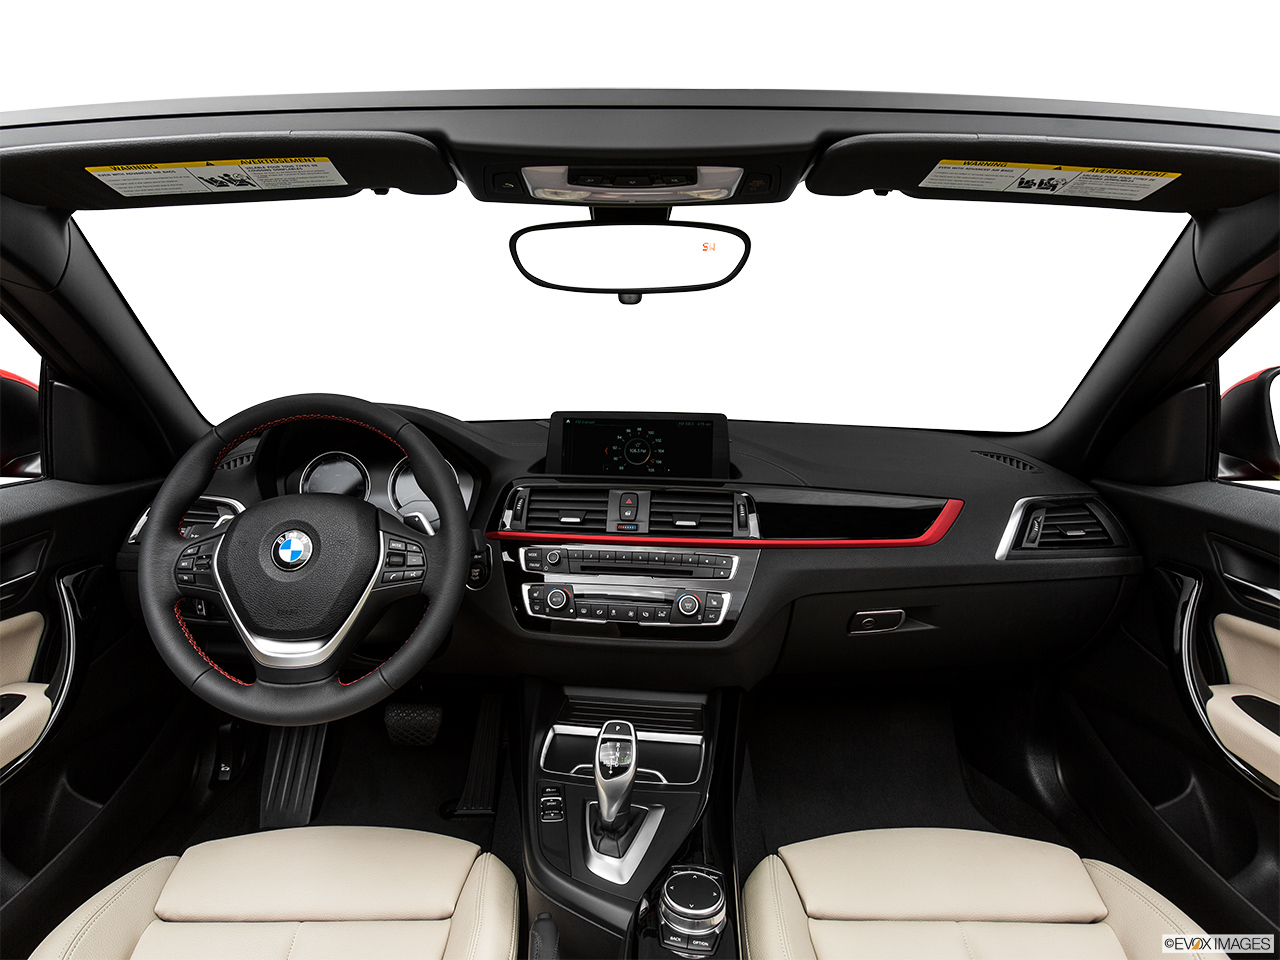 BMW 2 Series Convertible 2018, Saudi Arabia, Centered wide dash shot